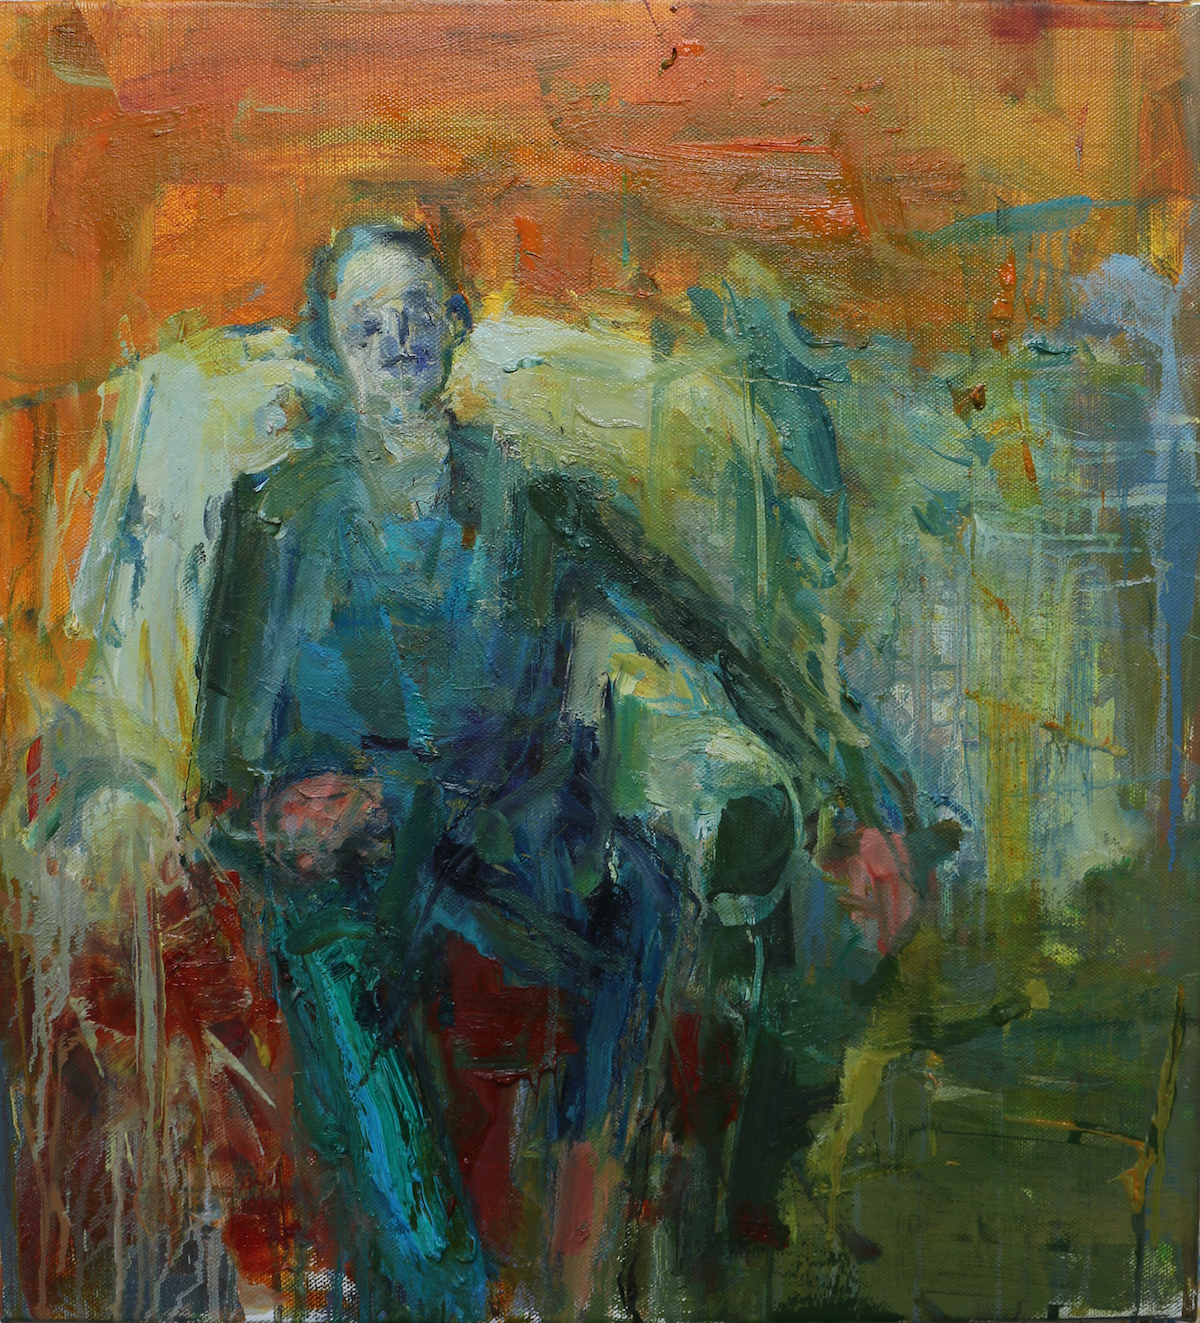 Union Gallery Exhibition - Seated Man - Orange Wall